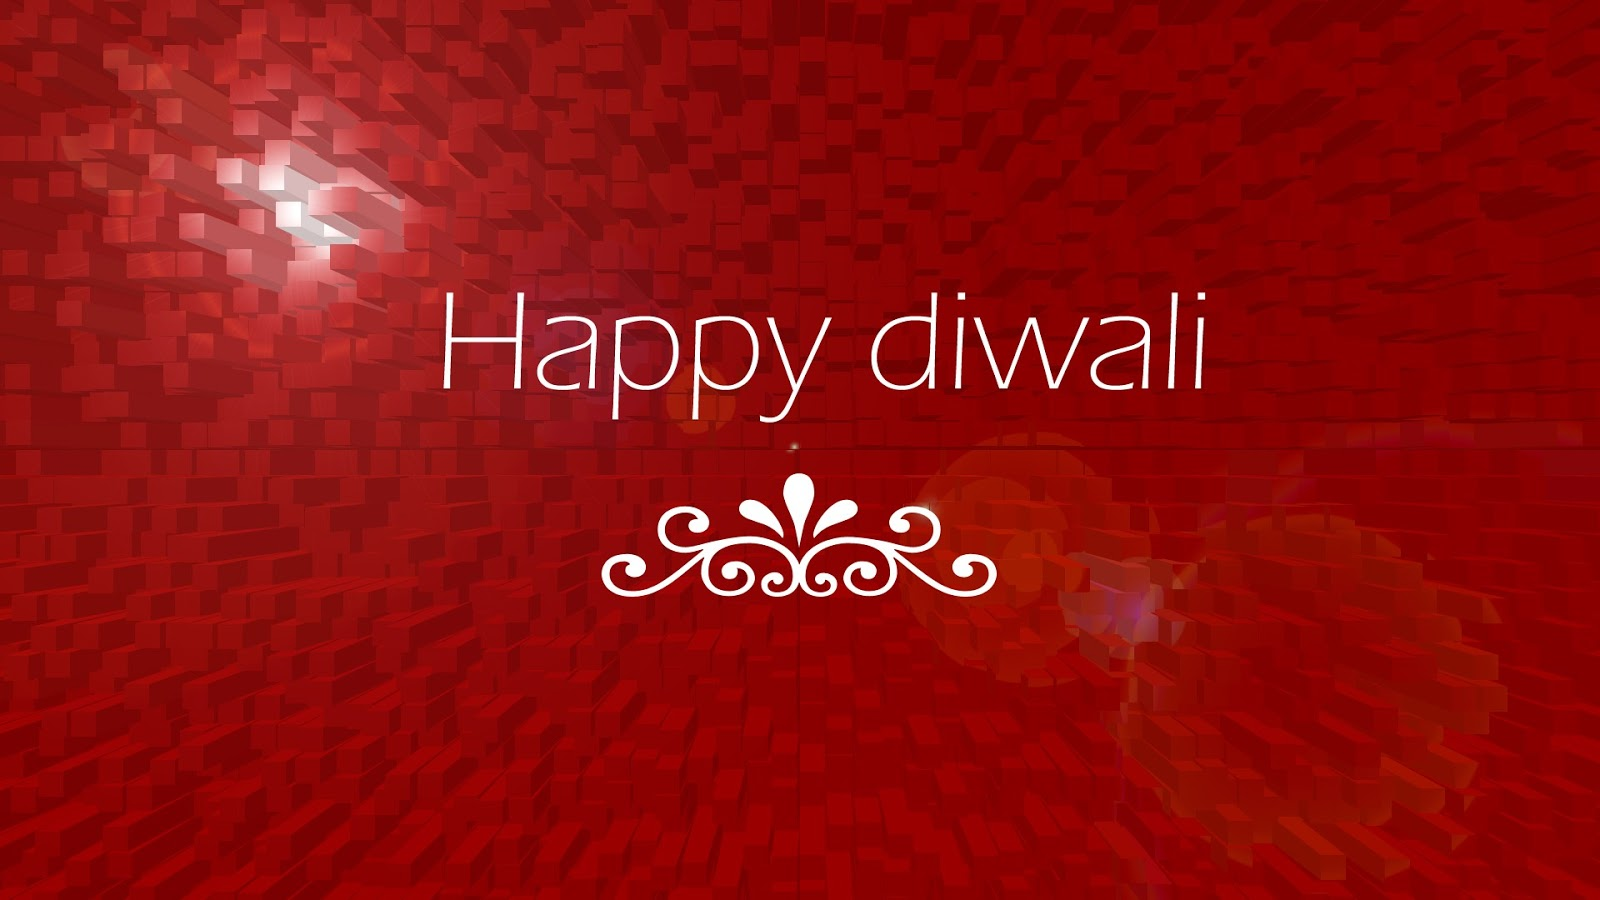 happy diwali deepavali greeting cards wishes pictures diwali greetings cards